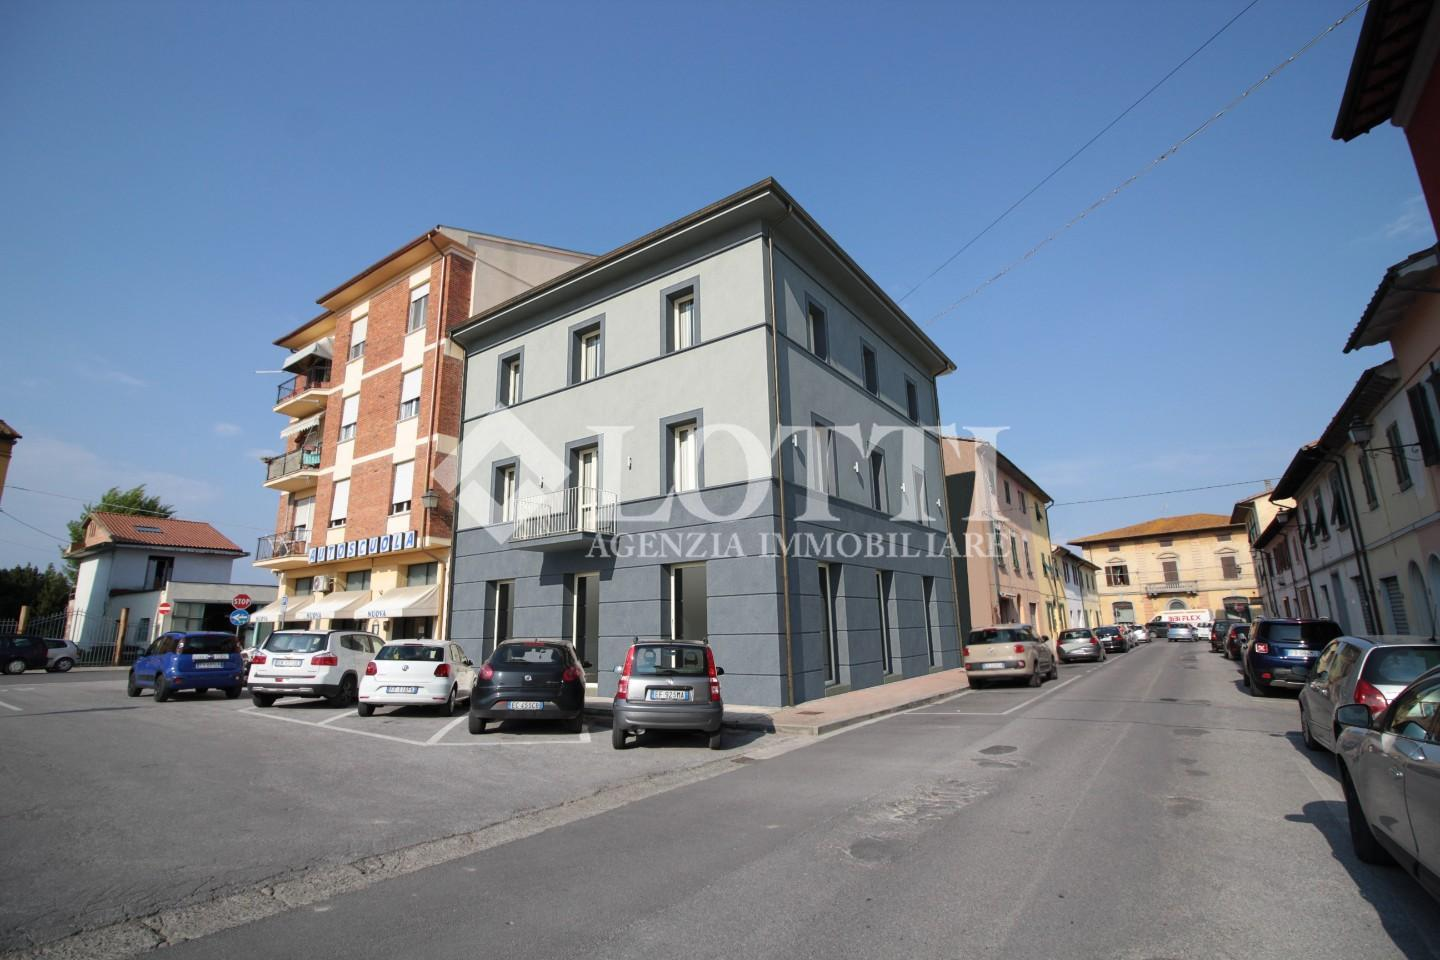 Business mall for sale in Bientina (PI)